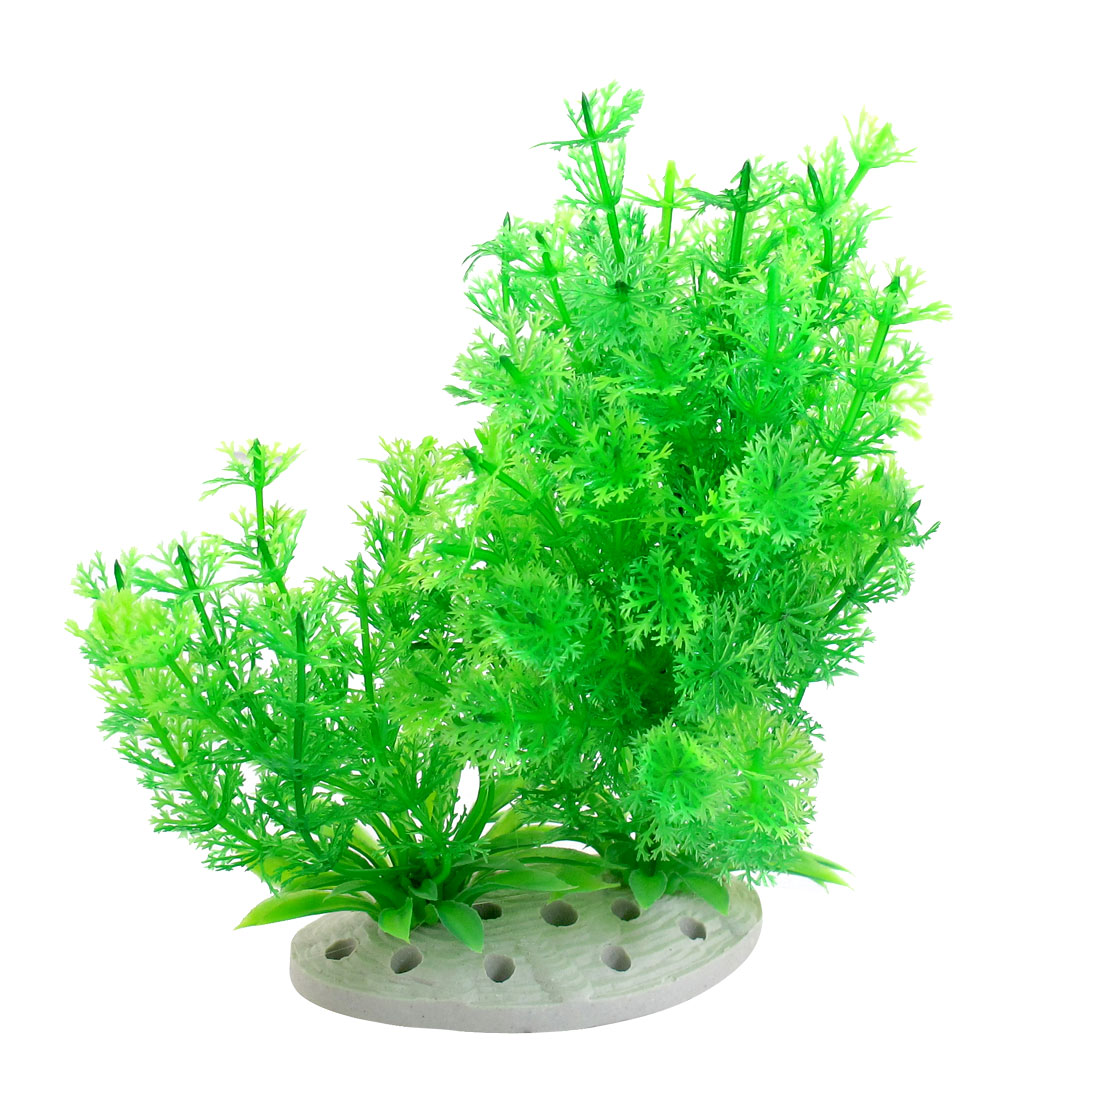 Underwater Green Plastic Plants Fish Tank Aquarium Ornament 7.3""